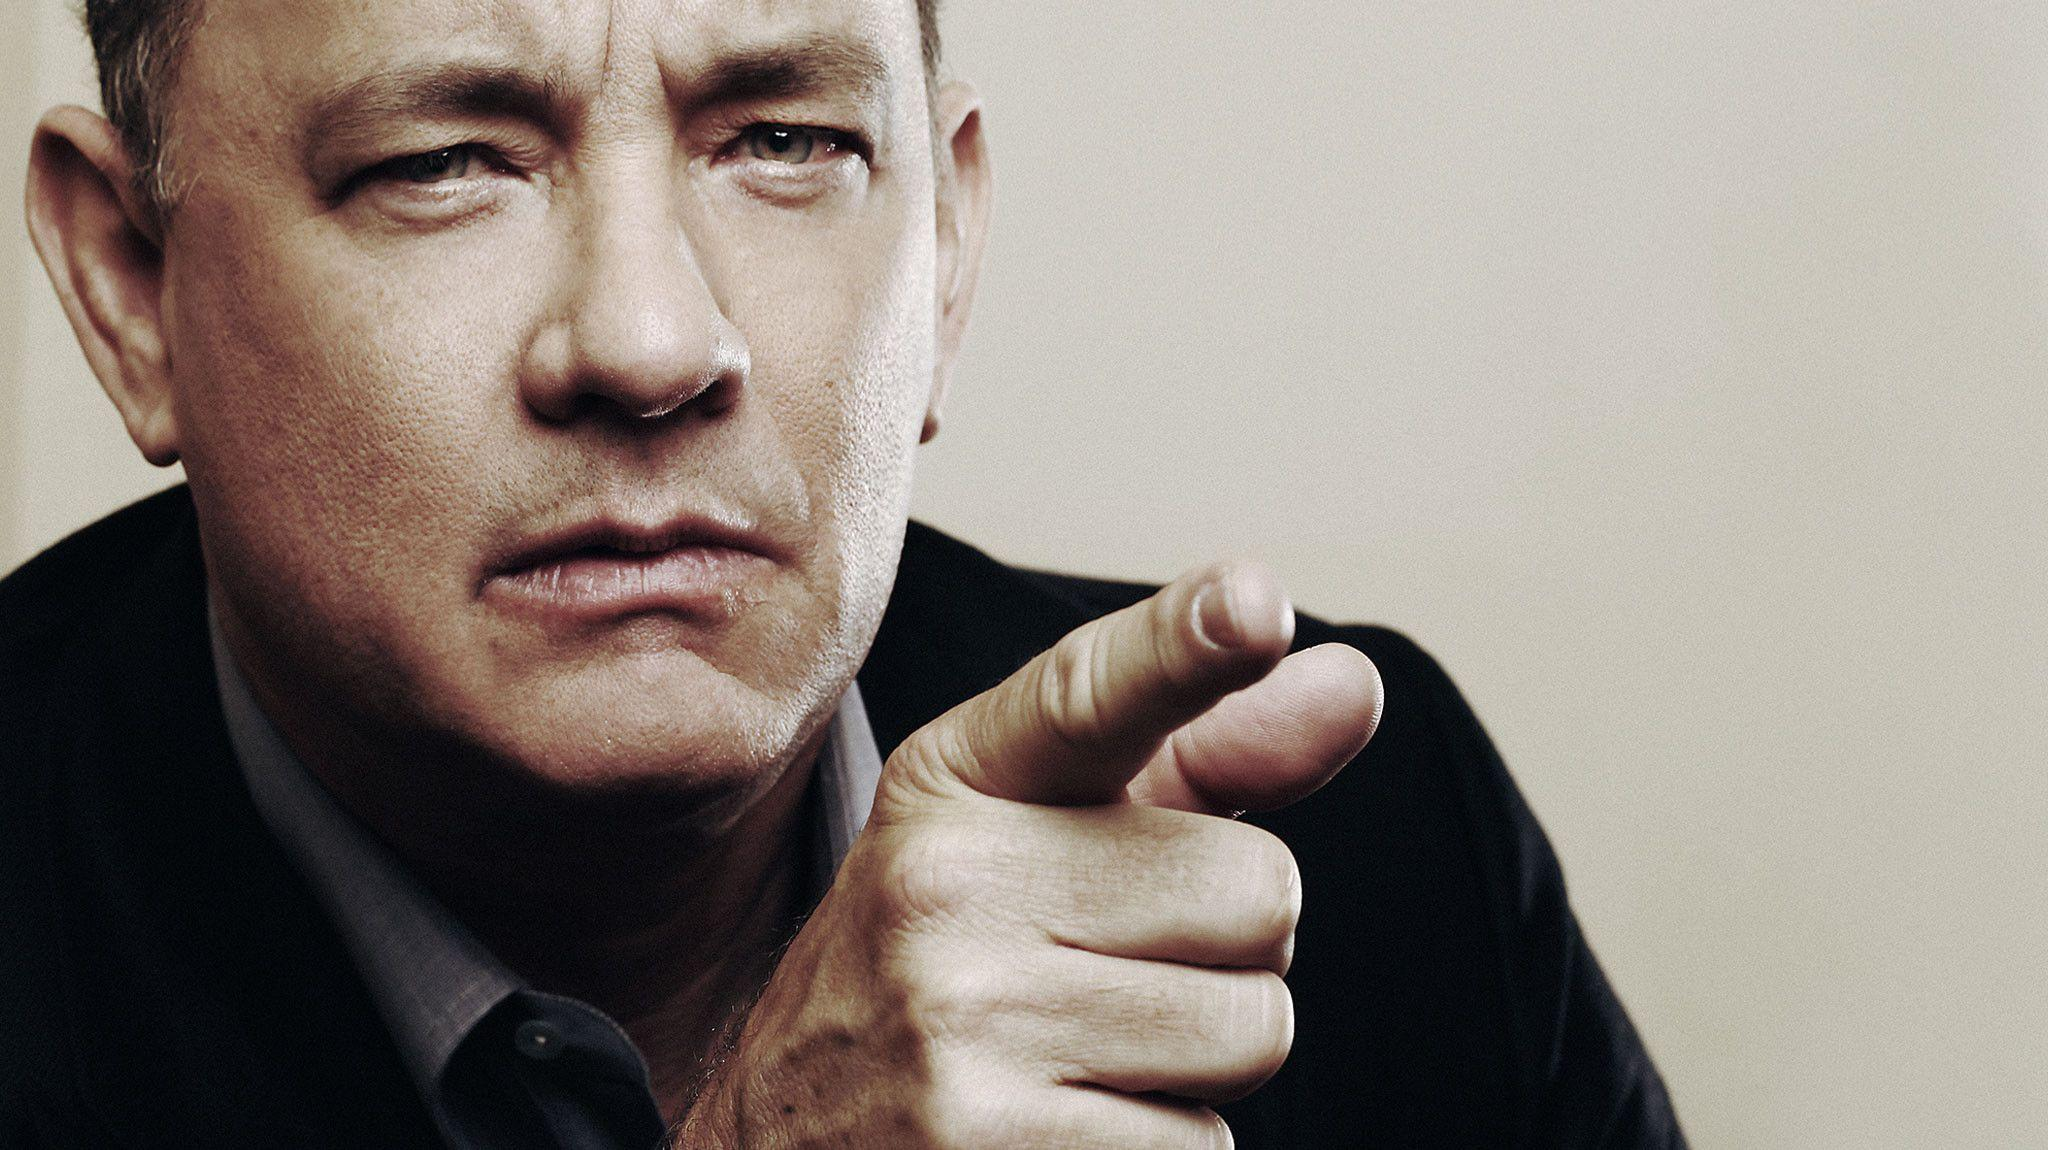 Tom Hanks Wallpapers HD Collection For Free Download